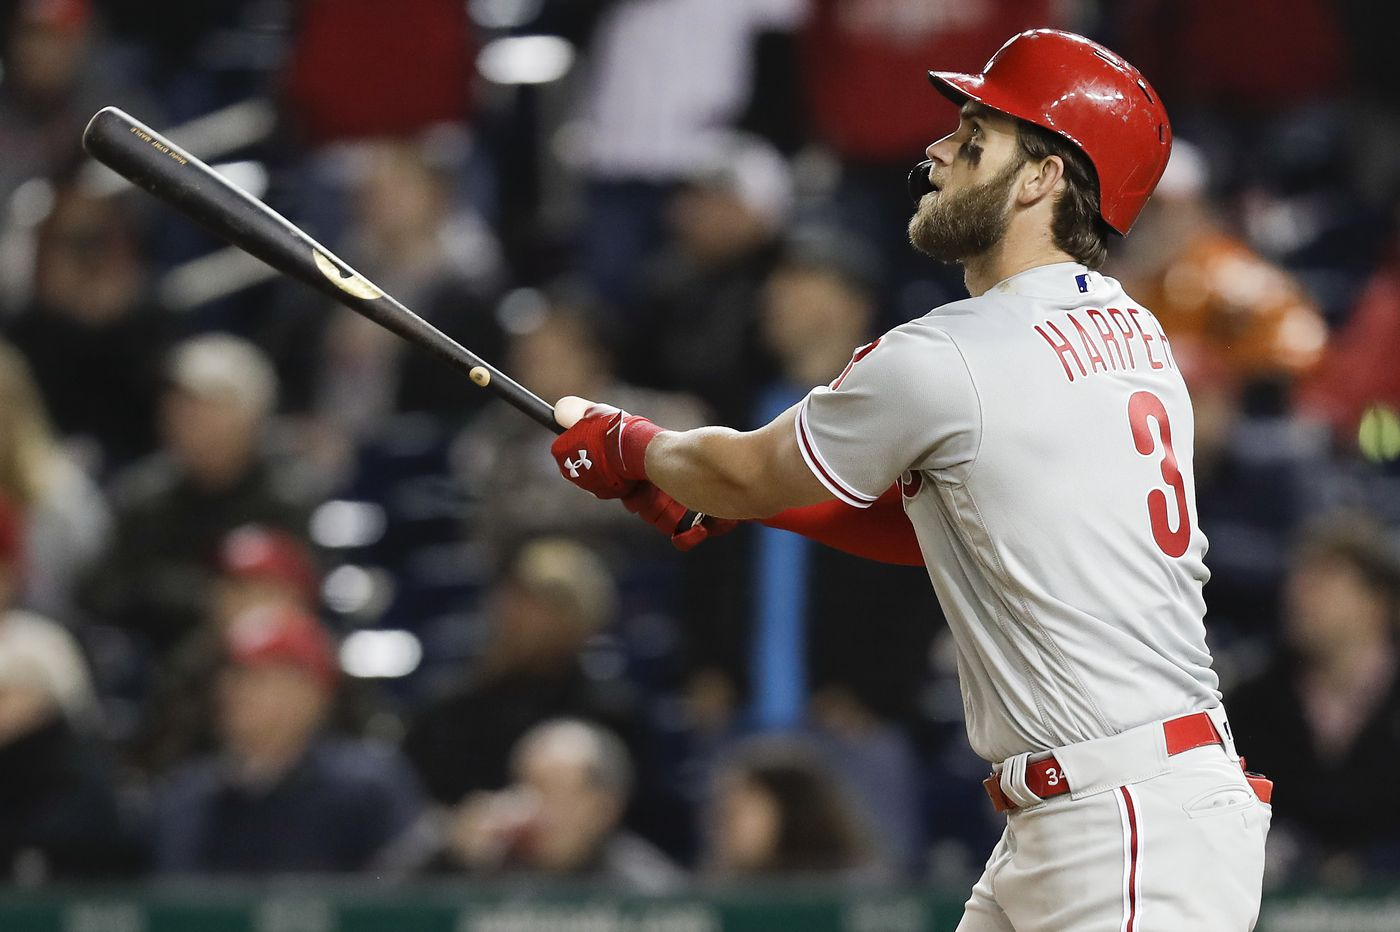 Bryce Harper, Phillies respond to Nationals fans' boos with a win